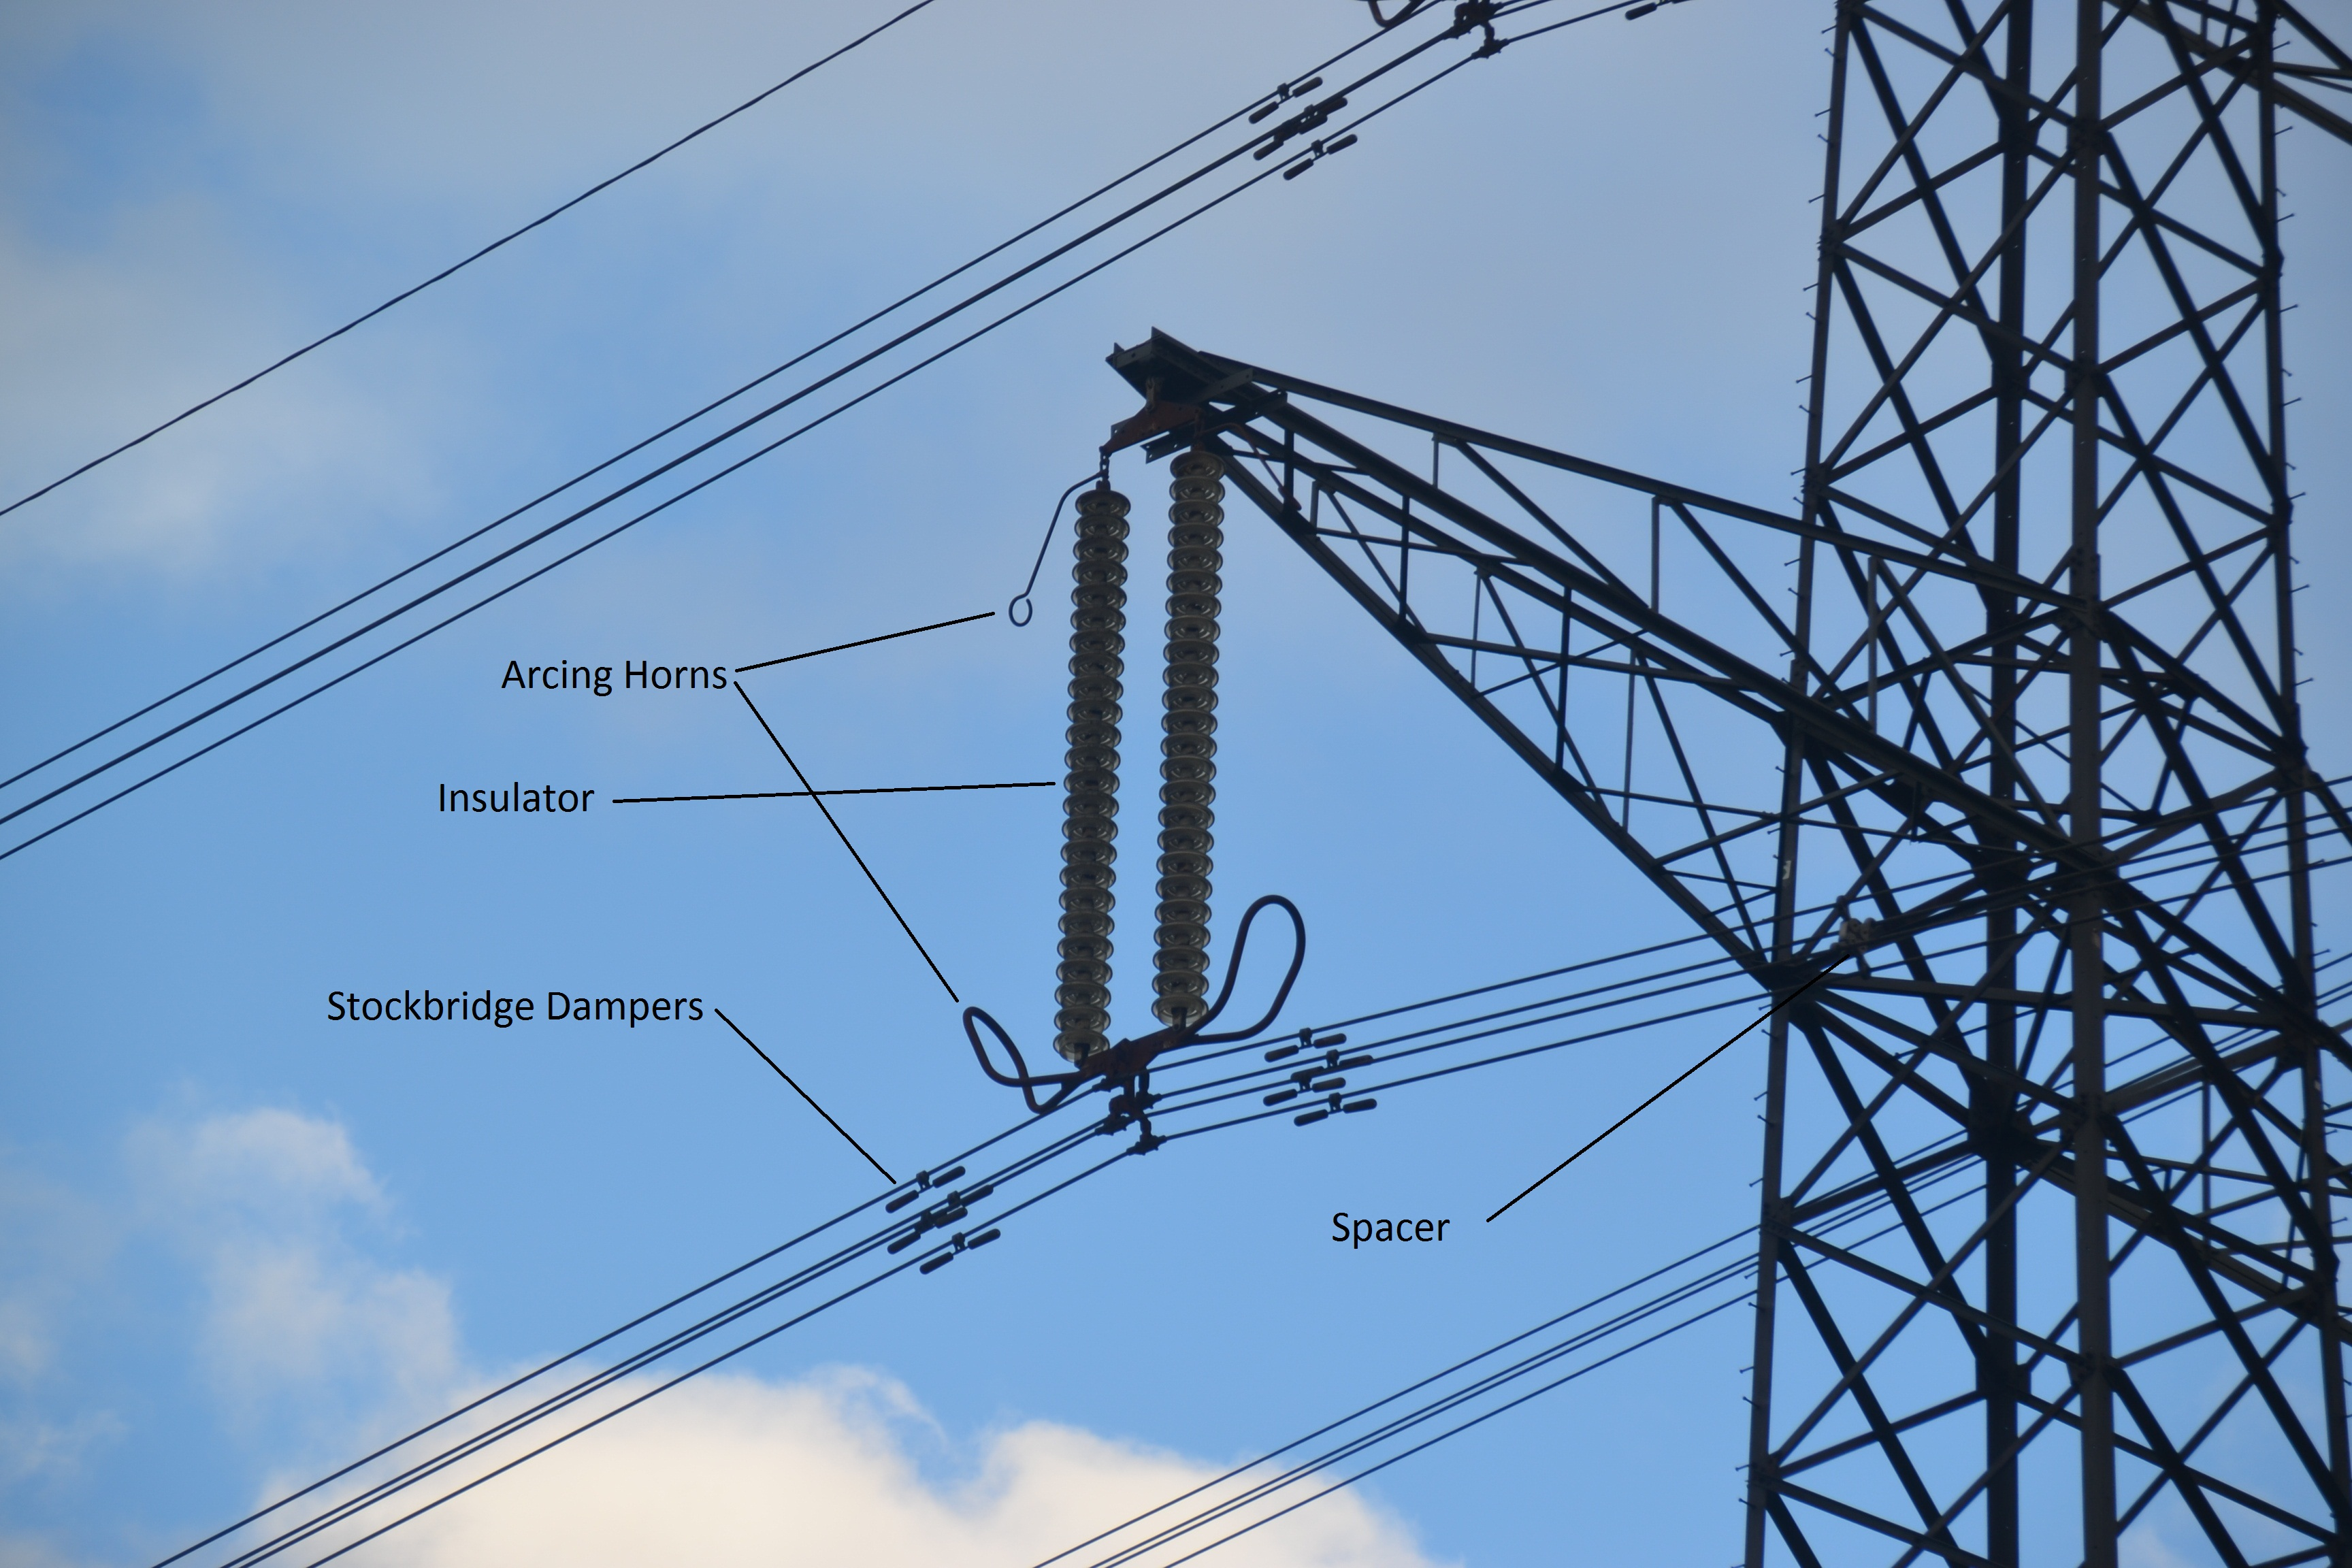 File:Electricity Wire Annotated.jpg - Wikimedia Commons